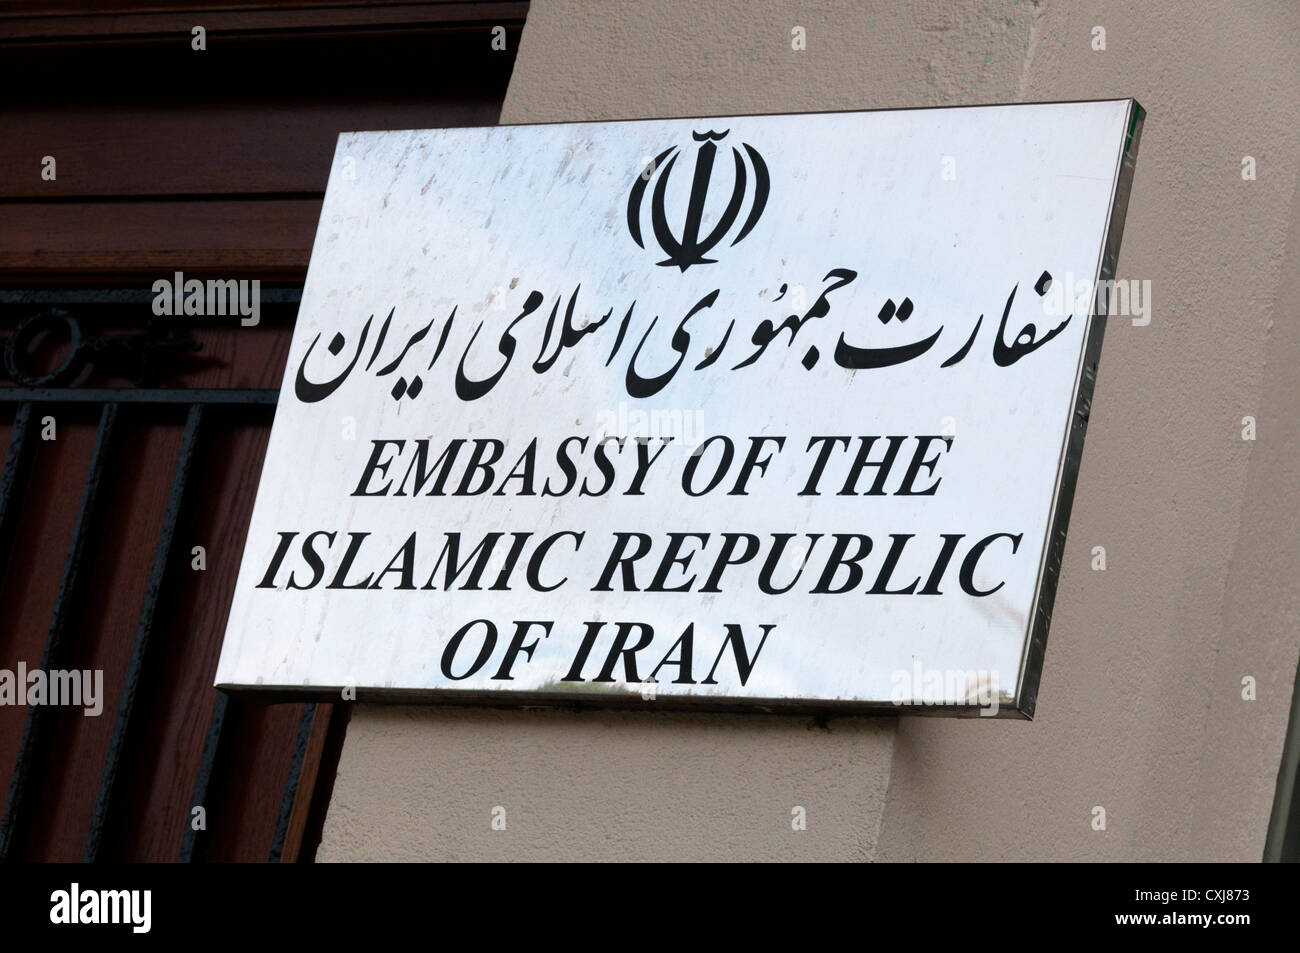 Sign for the Embassy of the Islamic Republic of Iran in Prince's Gate, London. Stock Photo